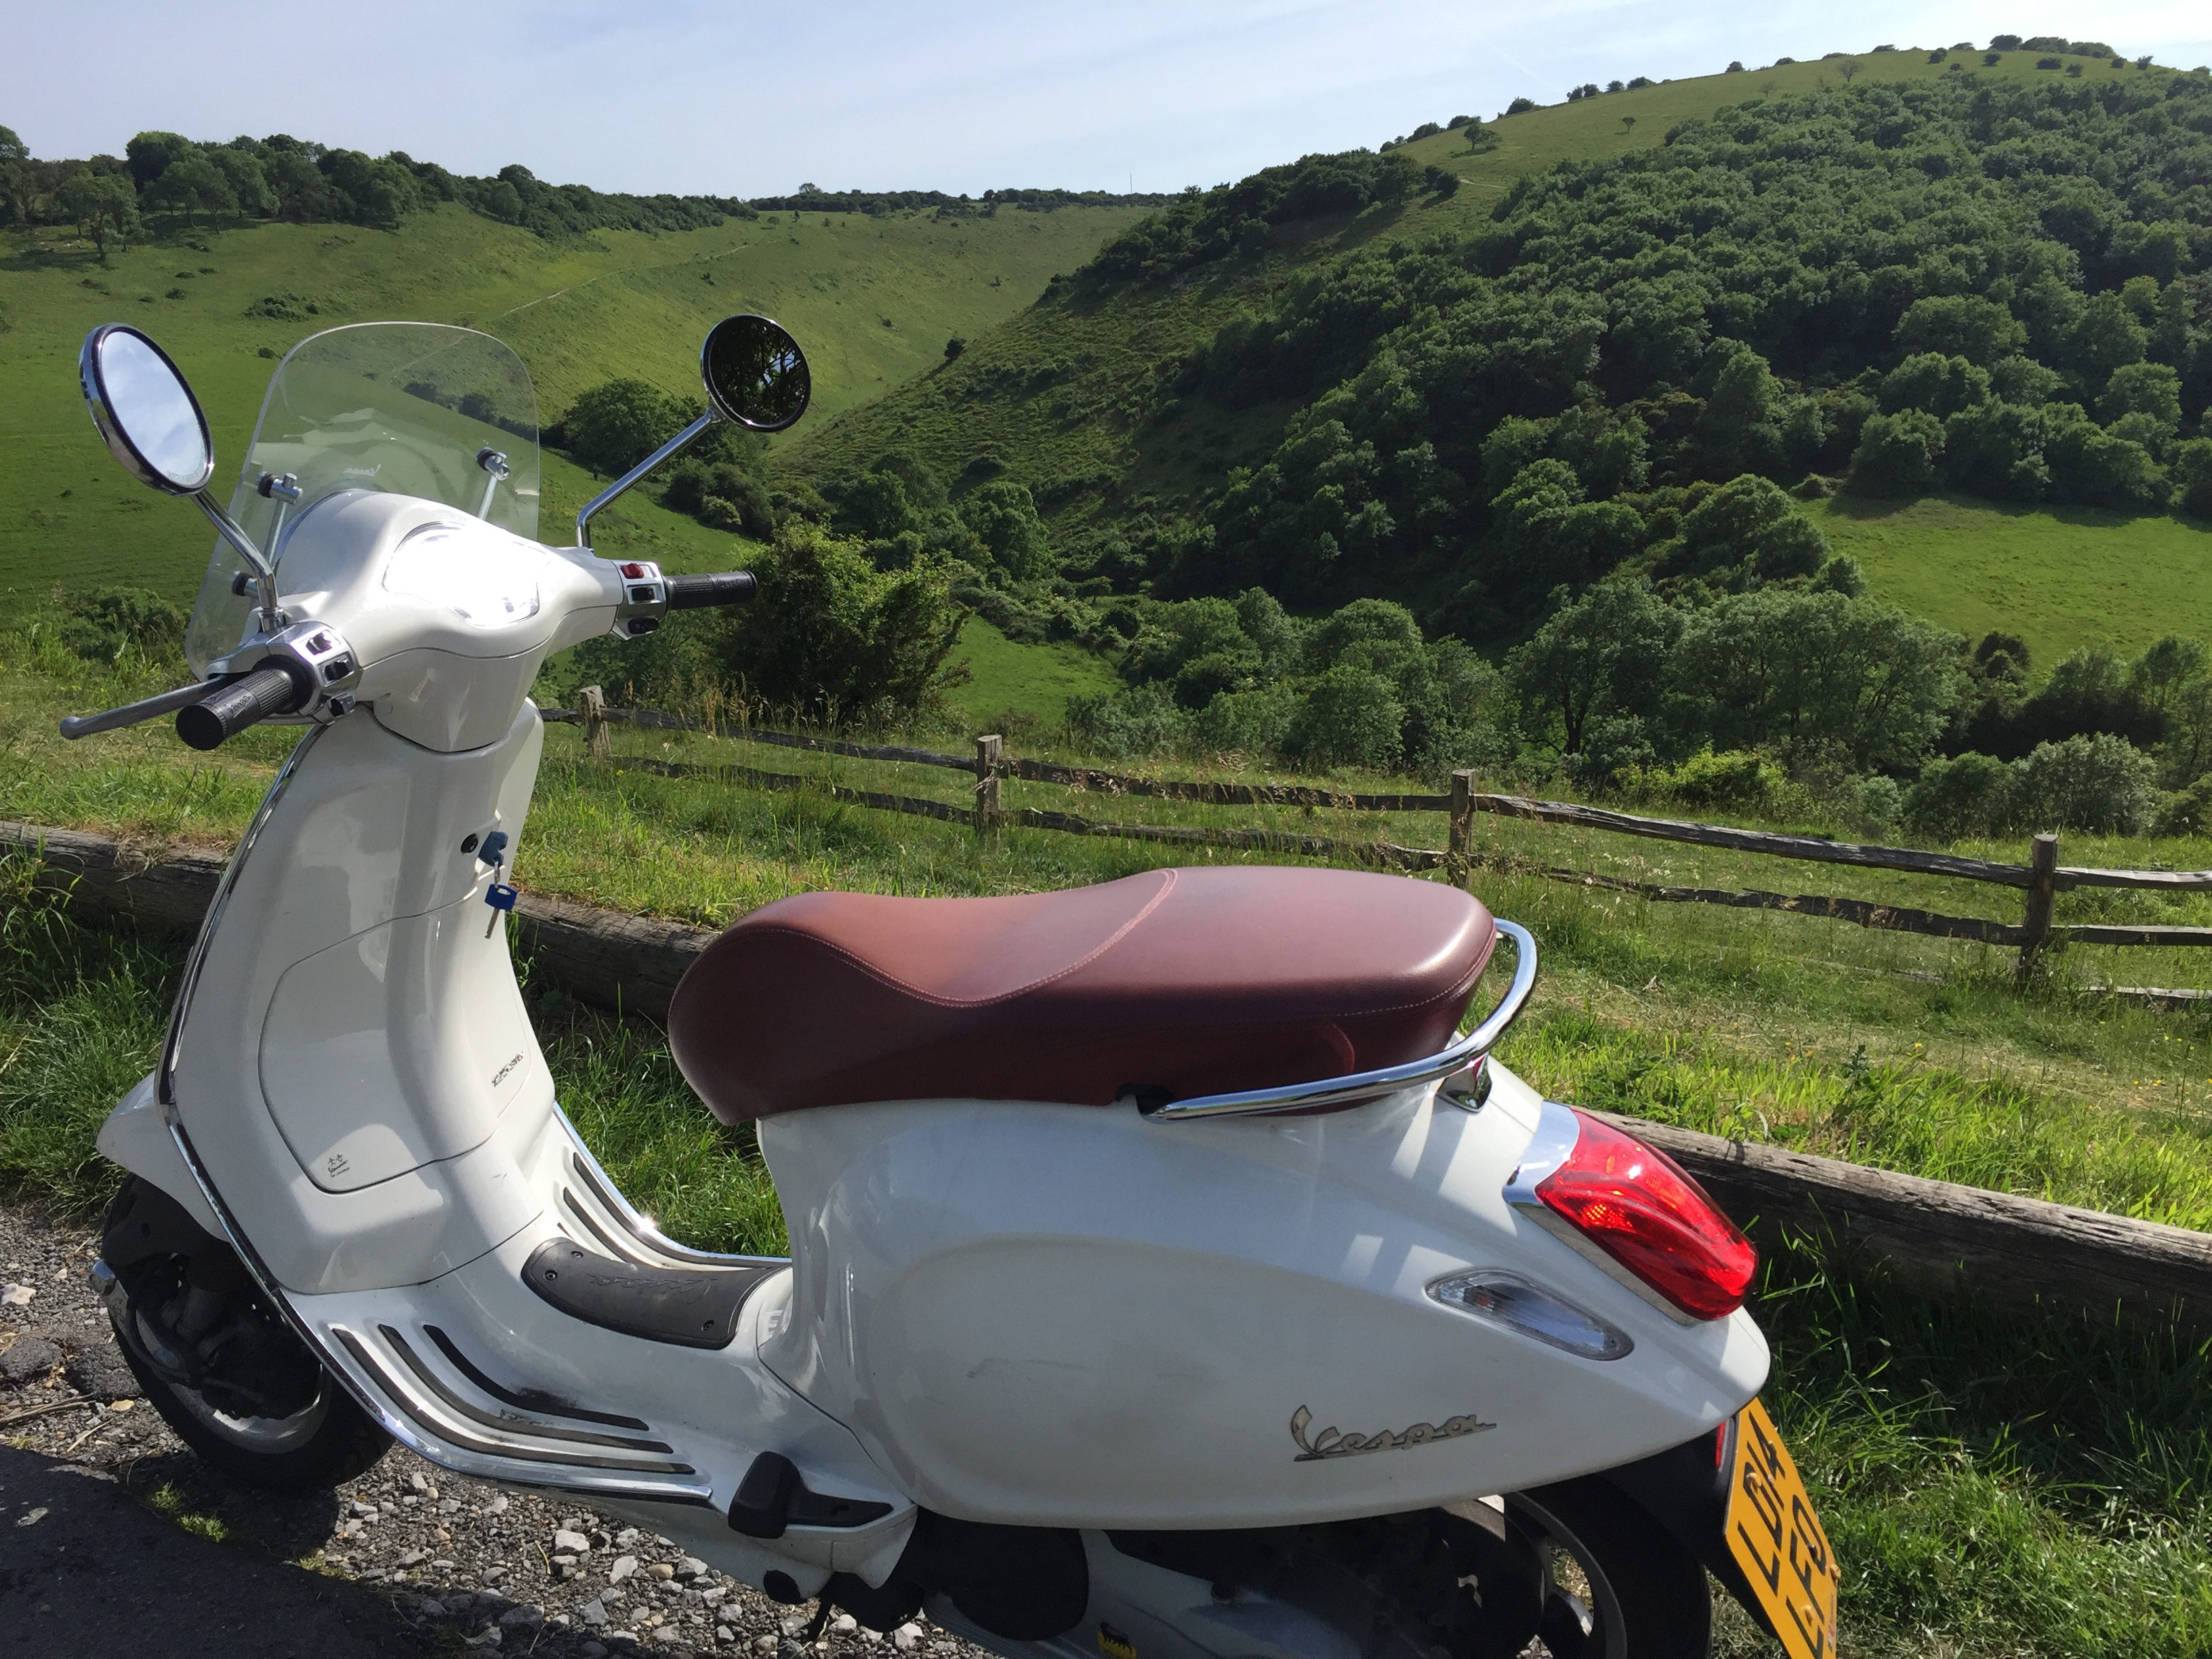 Vespa over countryside